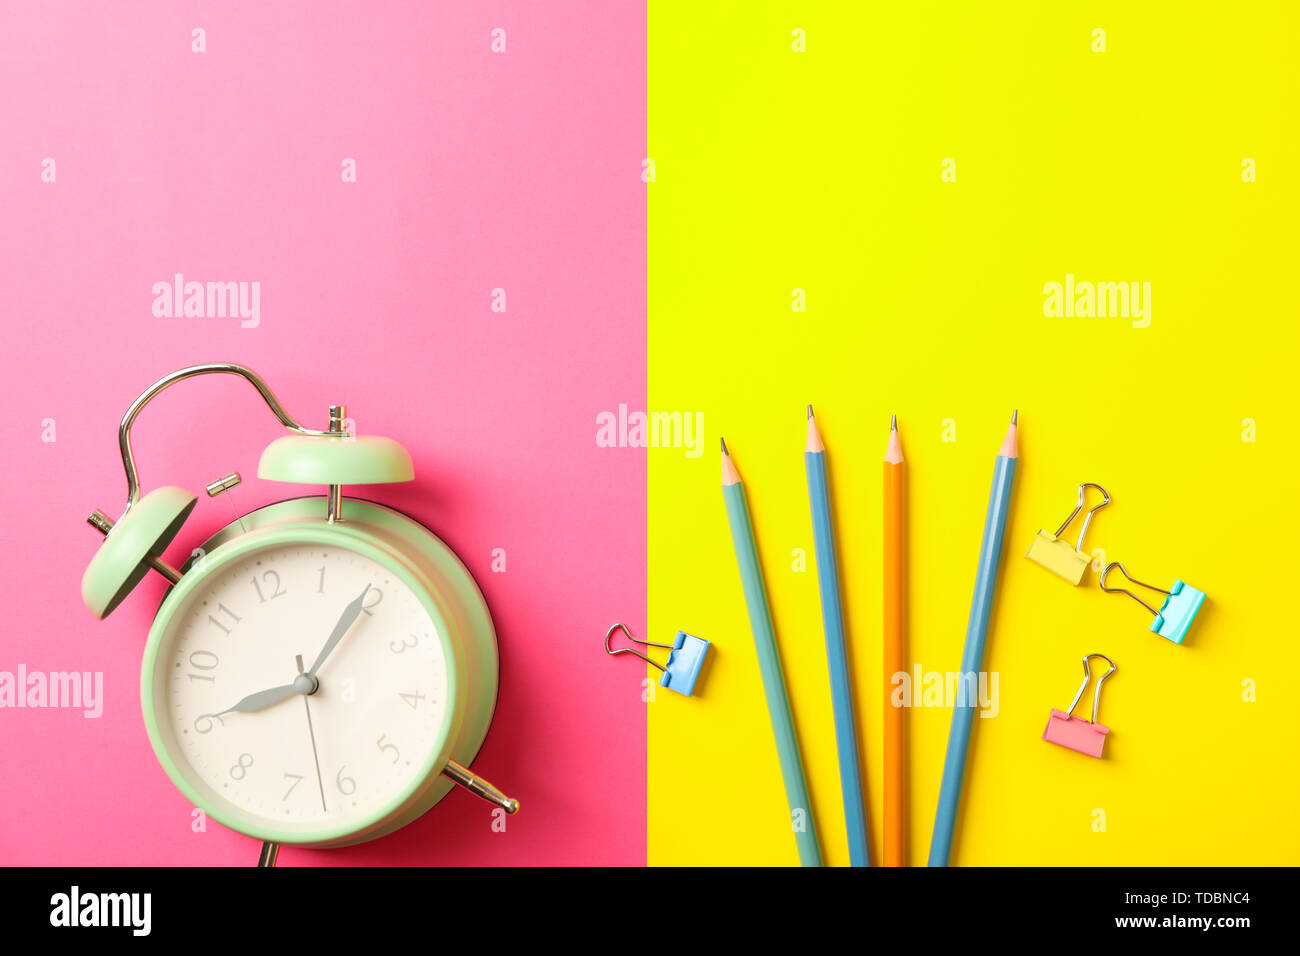 Composition with alarm clock, pencils and clips on two tone background, space for text - Stock Image